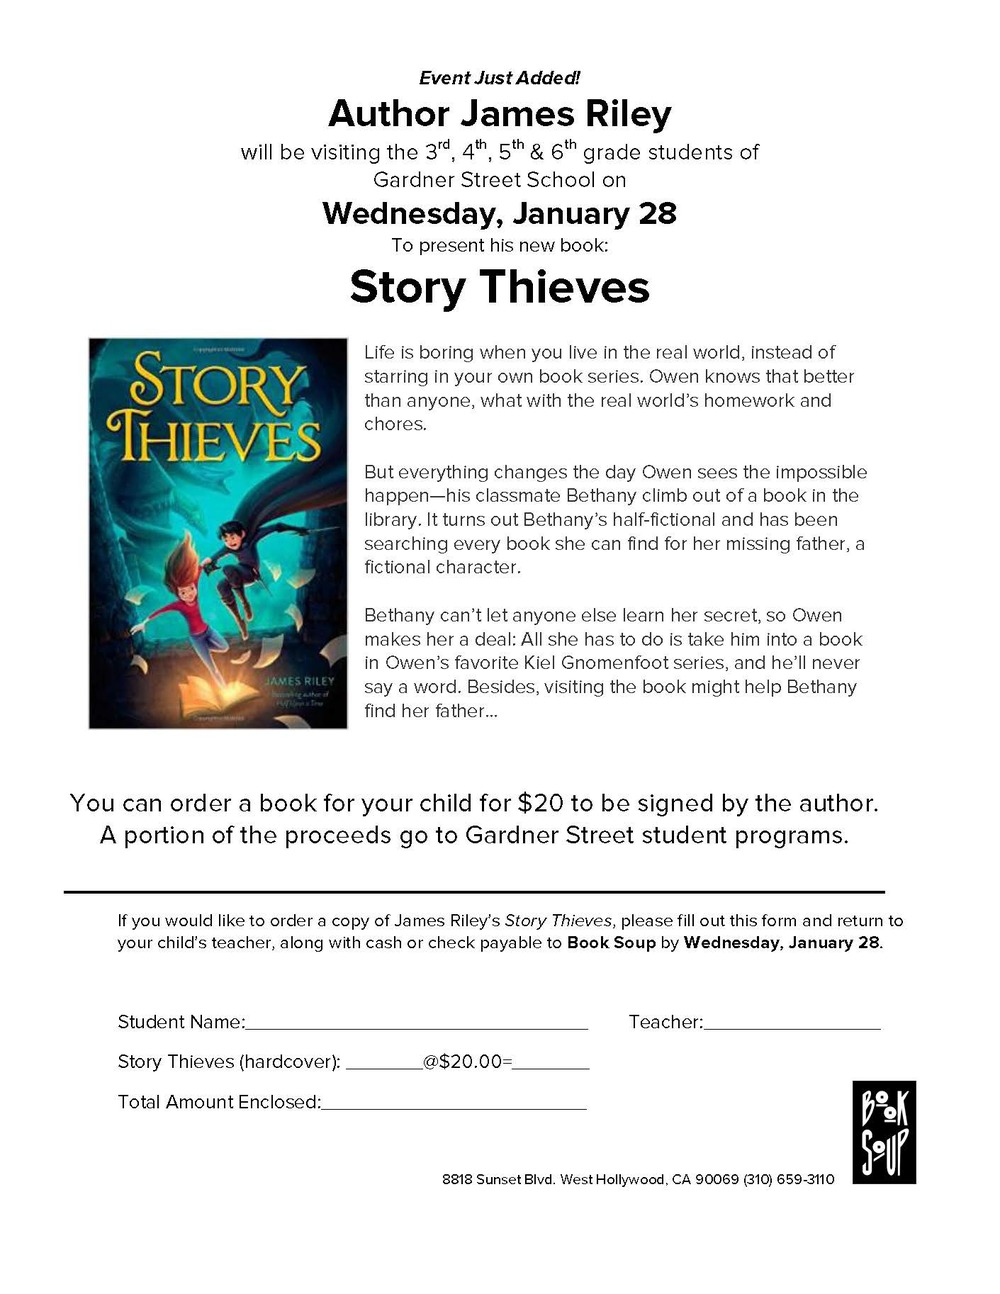 Story Thieves Flyer.jpg